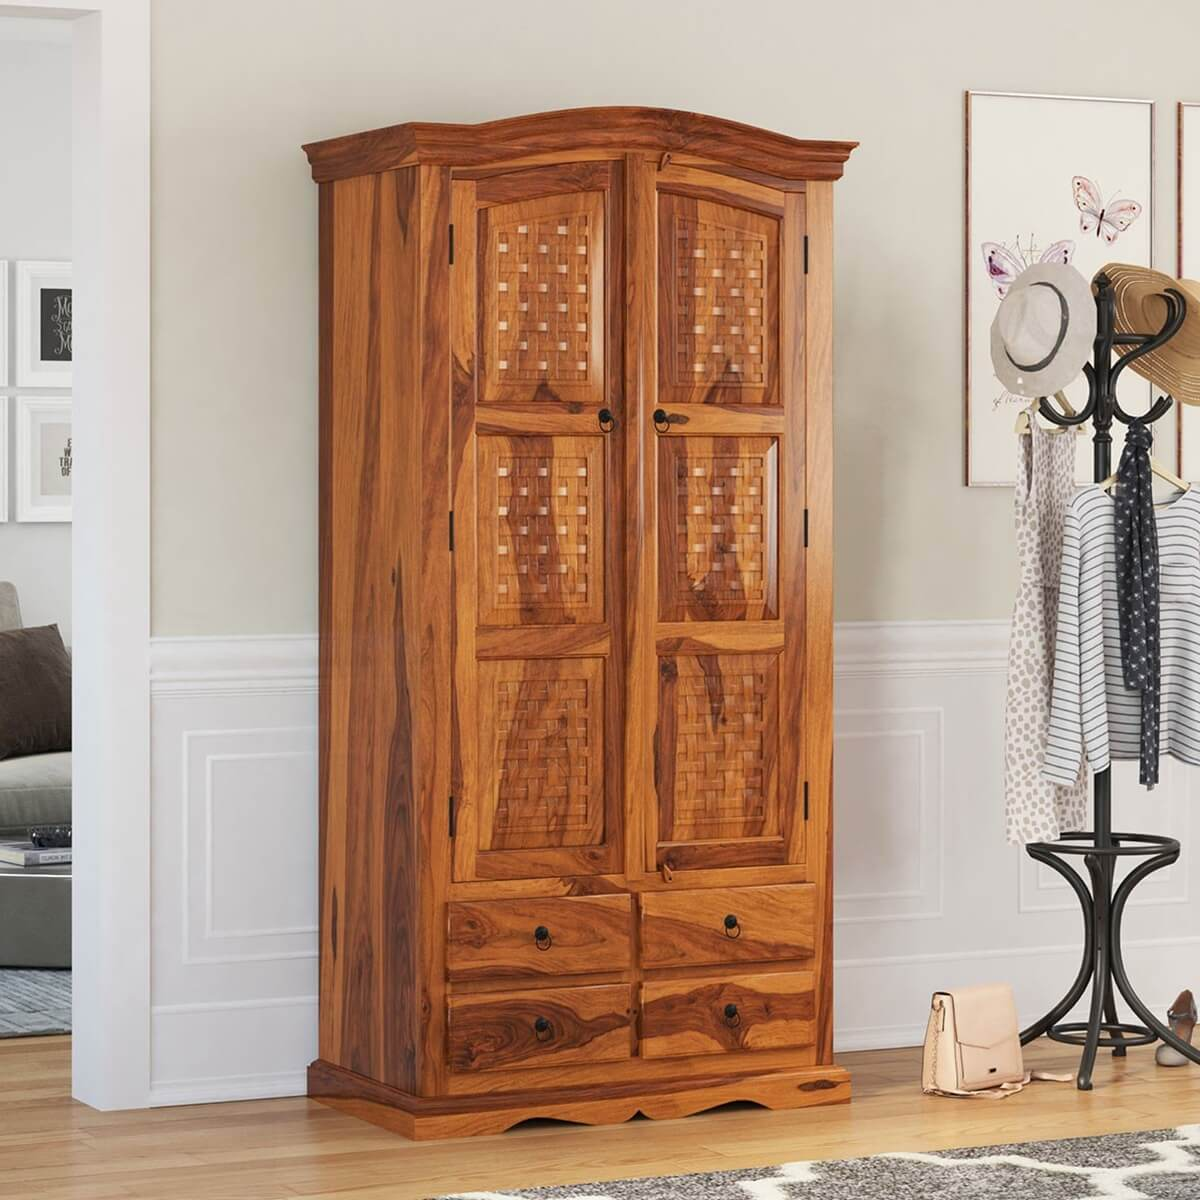 Wooden Armoire Wardrobe ~ Crawford handcrafted solid wood drawer tall armoire closet